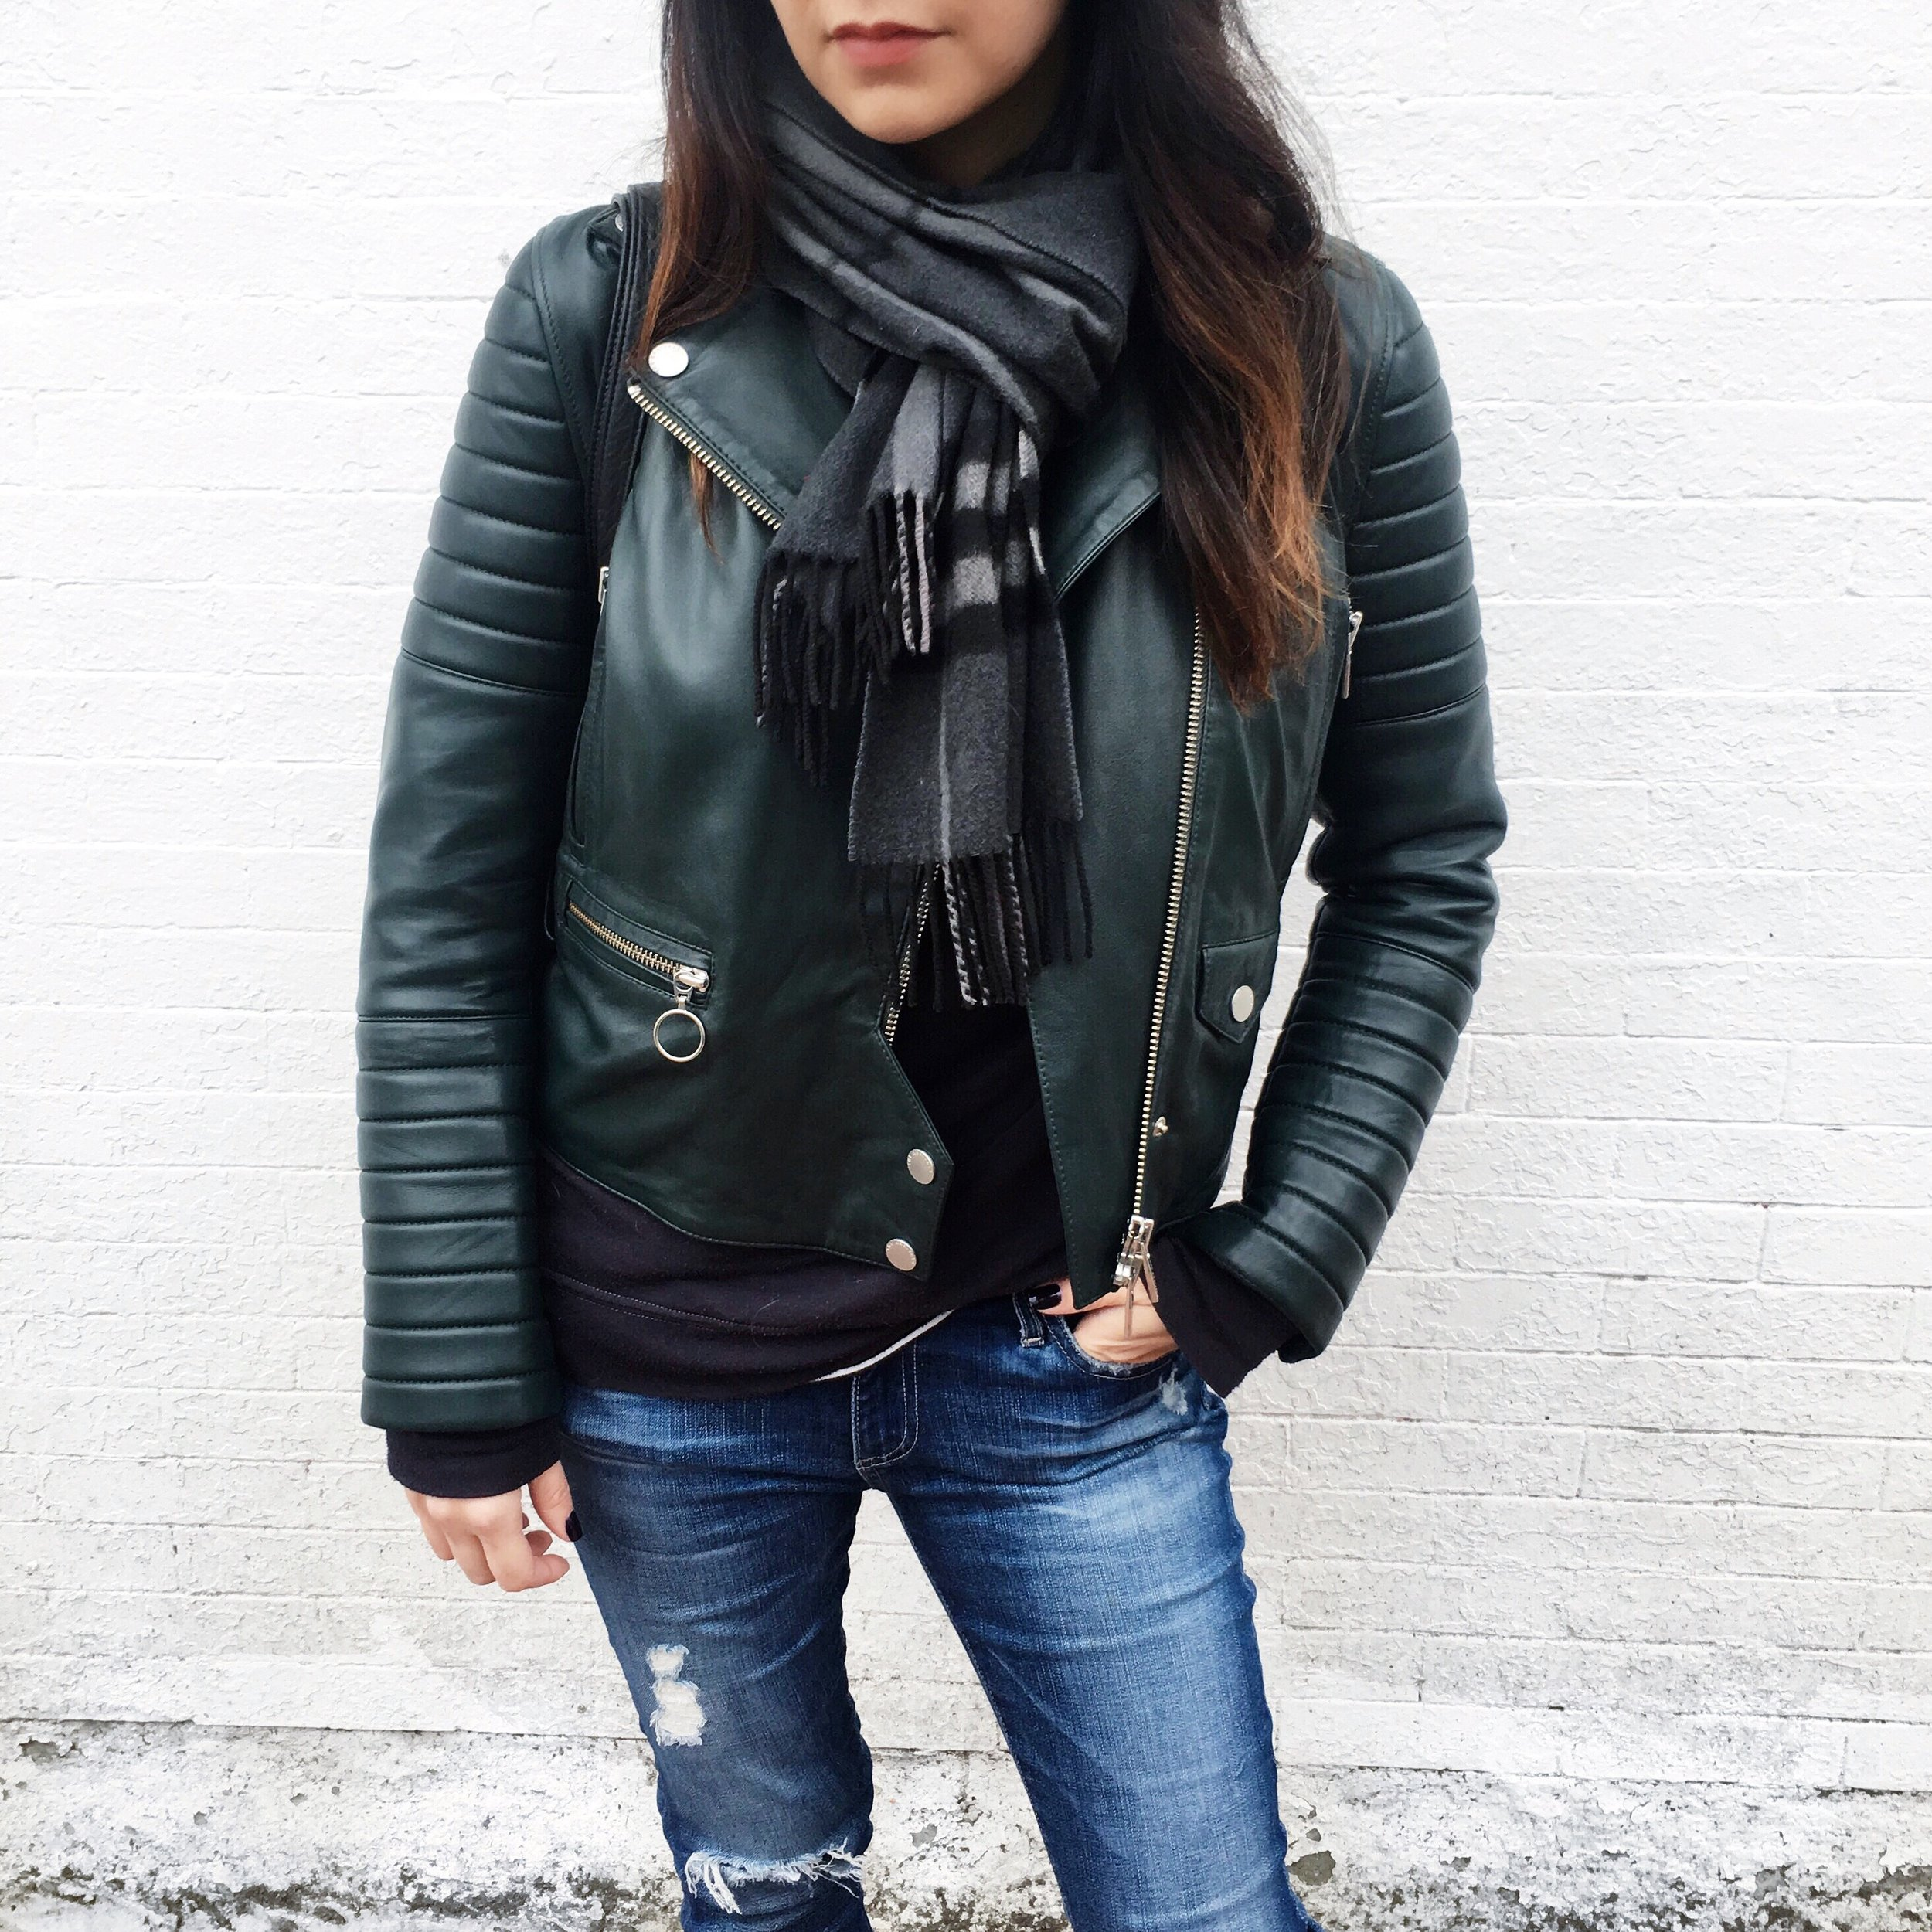 I got this Arrivals Leather jacket at almost 40% off because of an email I received about their end of season sale.